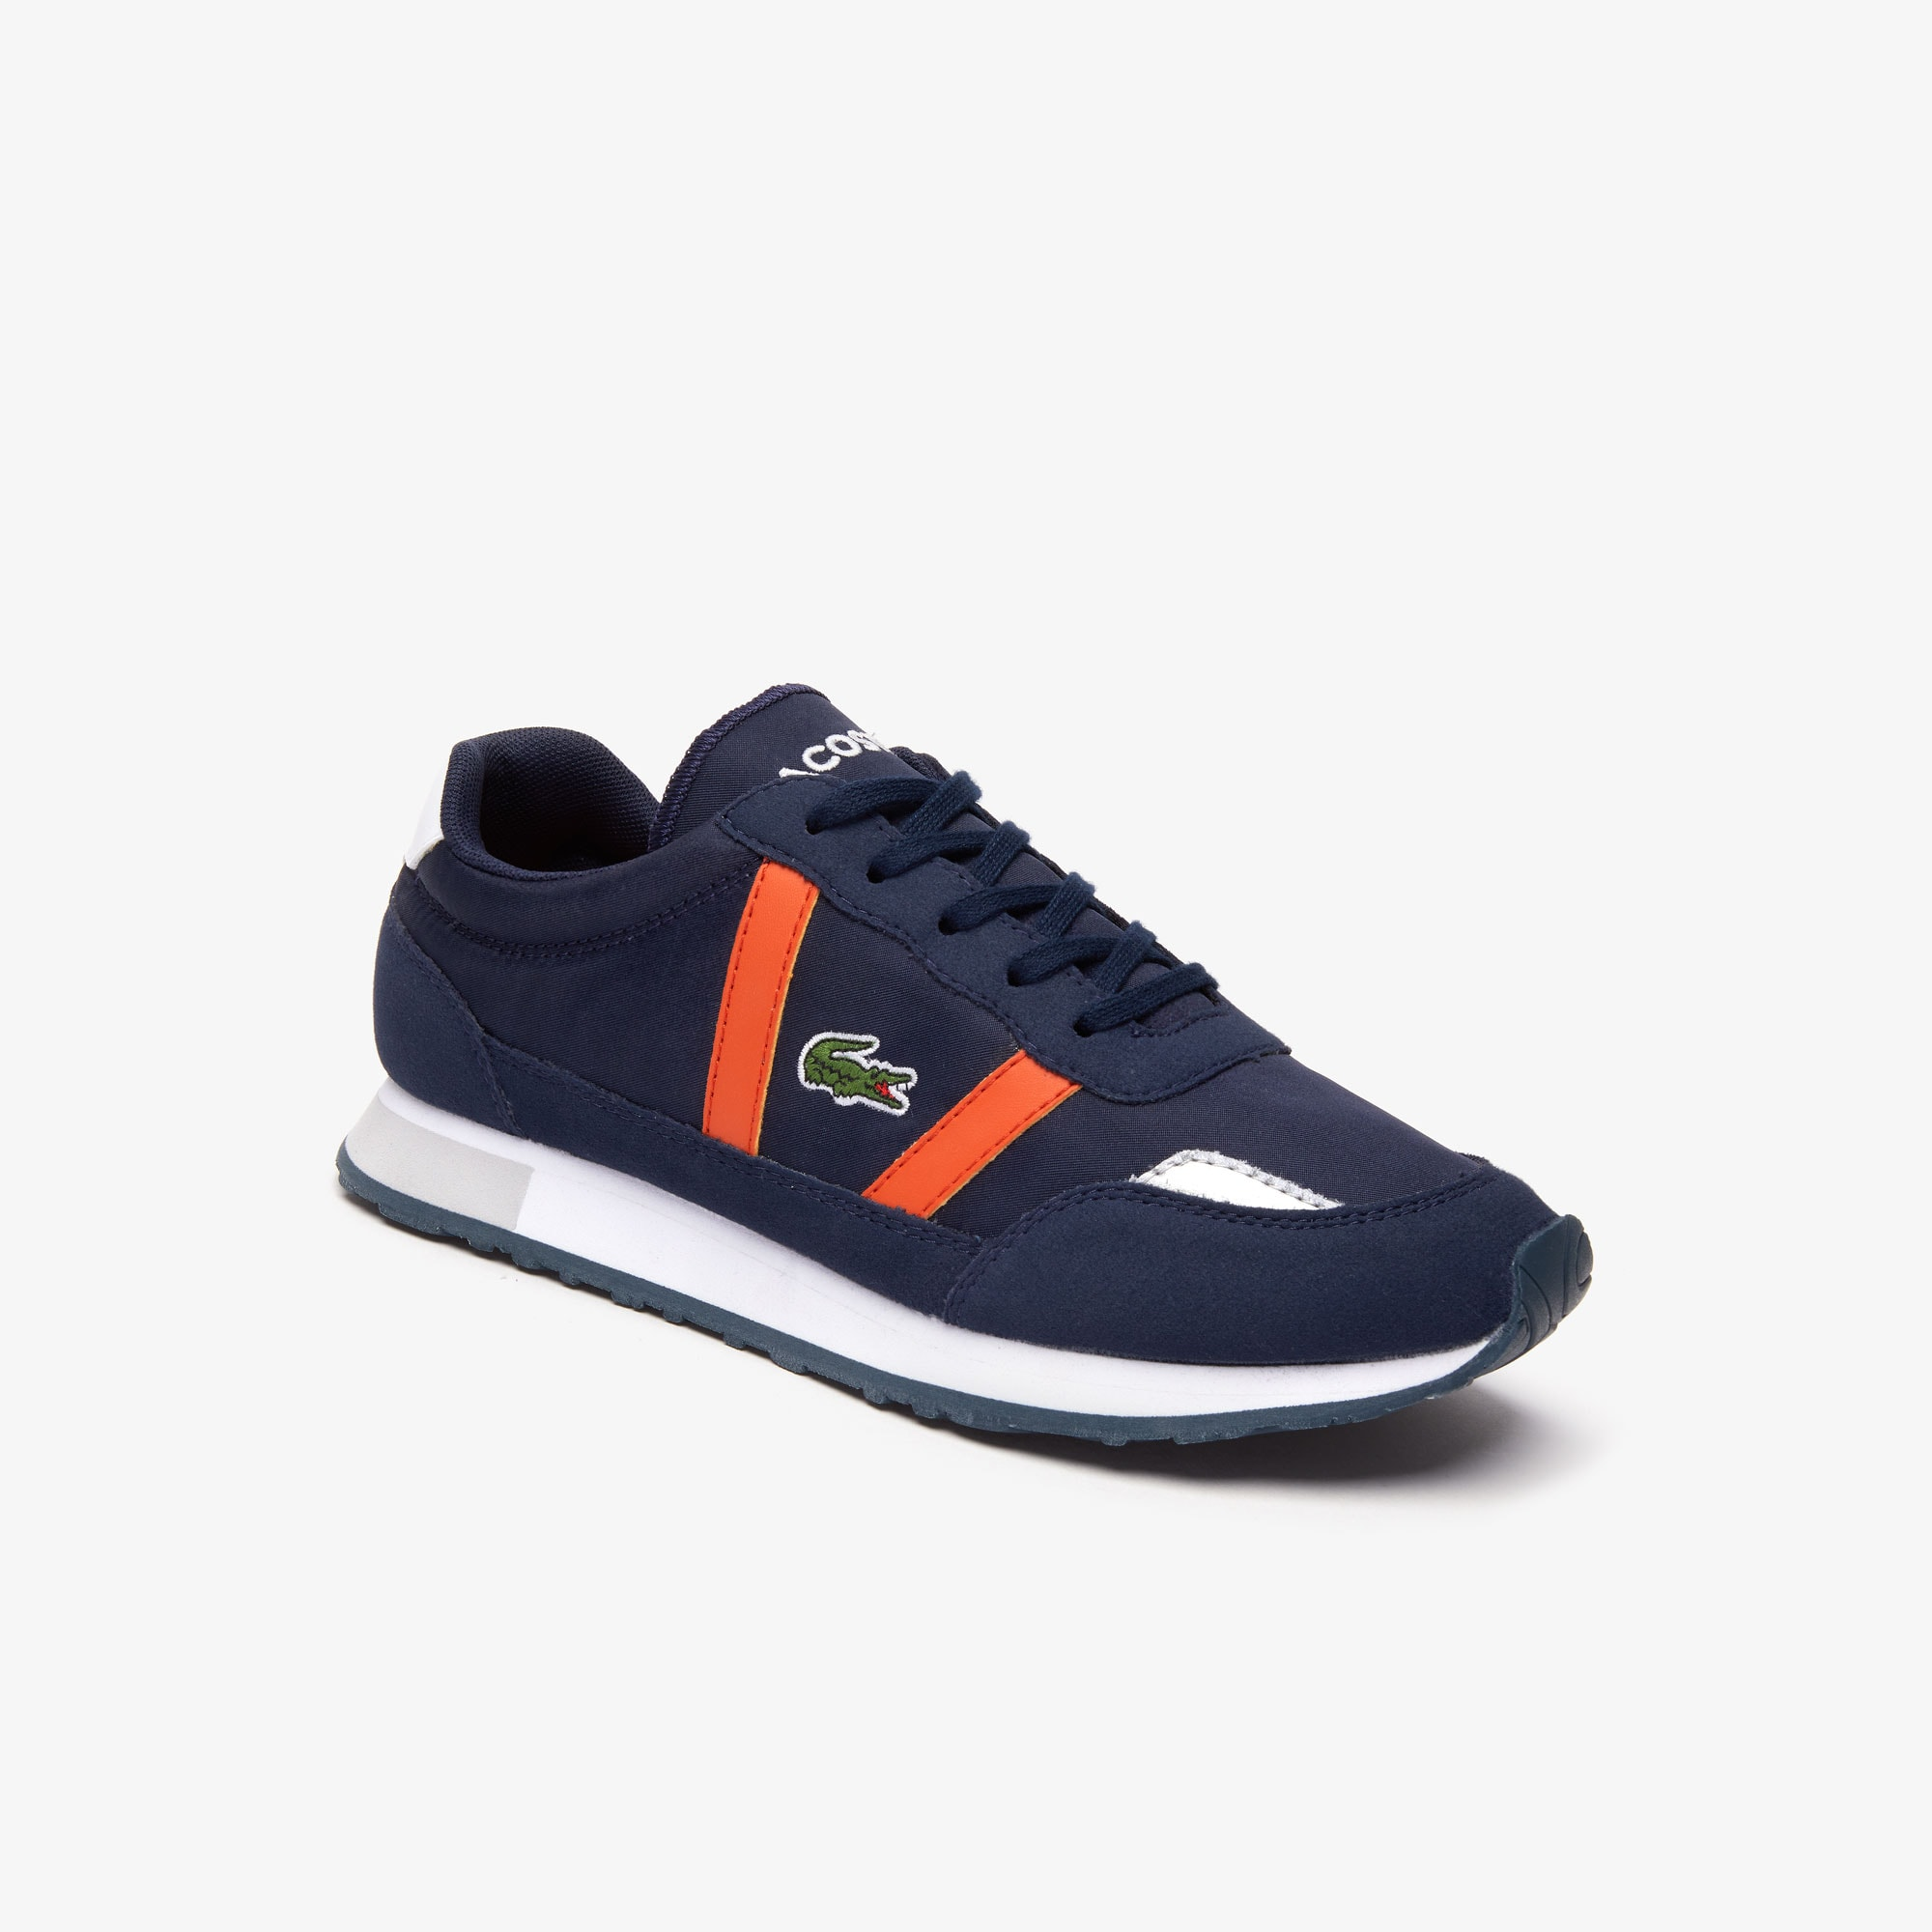 Enfant Lacoste Lacoste AdoChaussures Lacoste Enfant Enfant Enfant AdoChaussures Lacoste Enfant AdoChaussures AdoChaussures Lacoste AdoChaussures DH9YeWI2bE